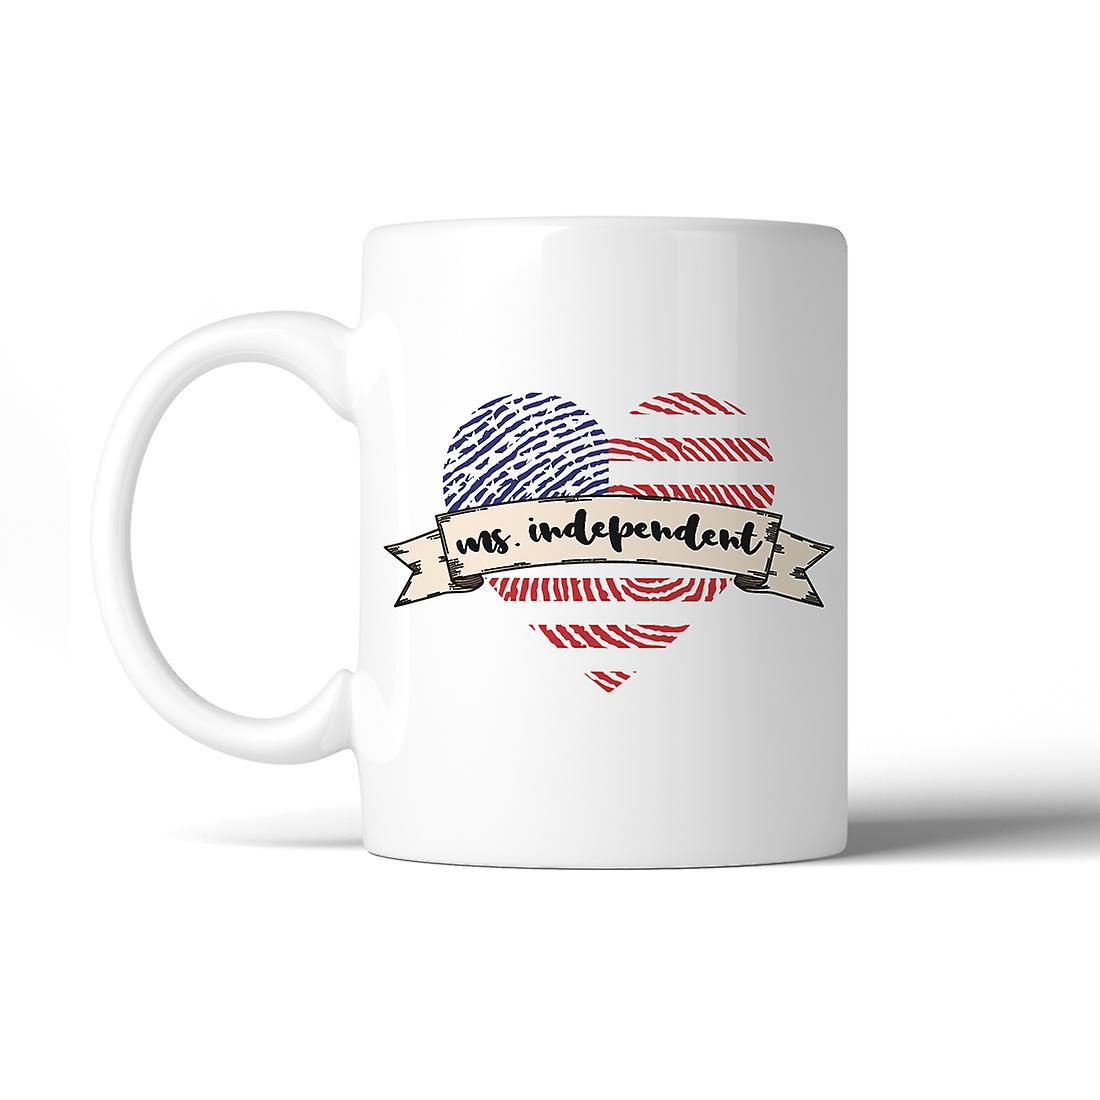 Print Of Ceramic Heart 11 MsIndependent Coffee Mug July Oz 4th 0OPX8nwk